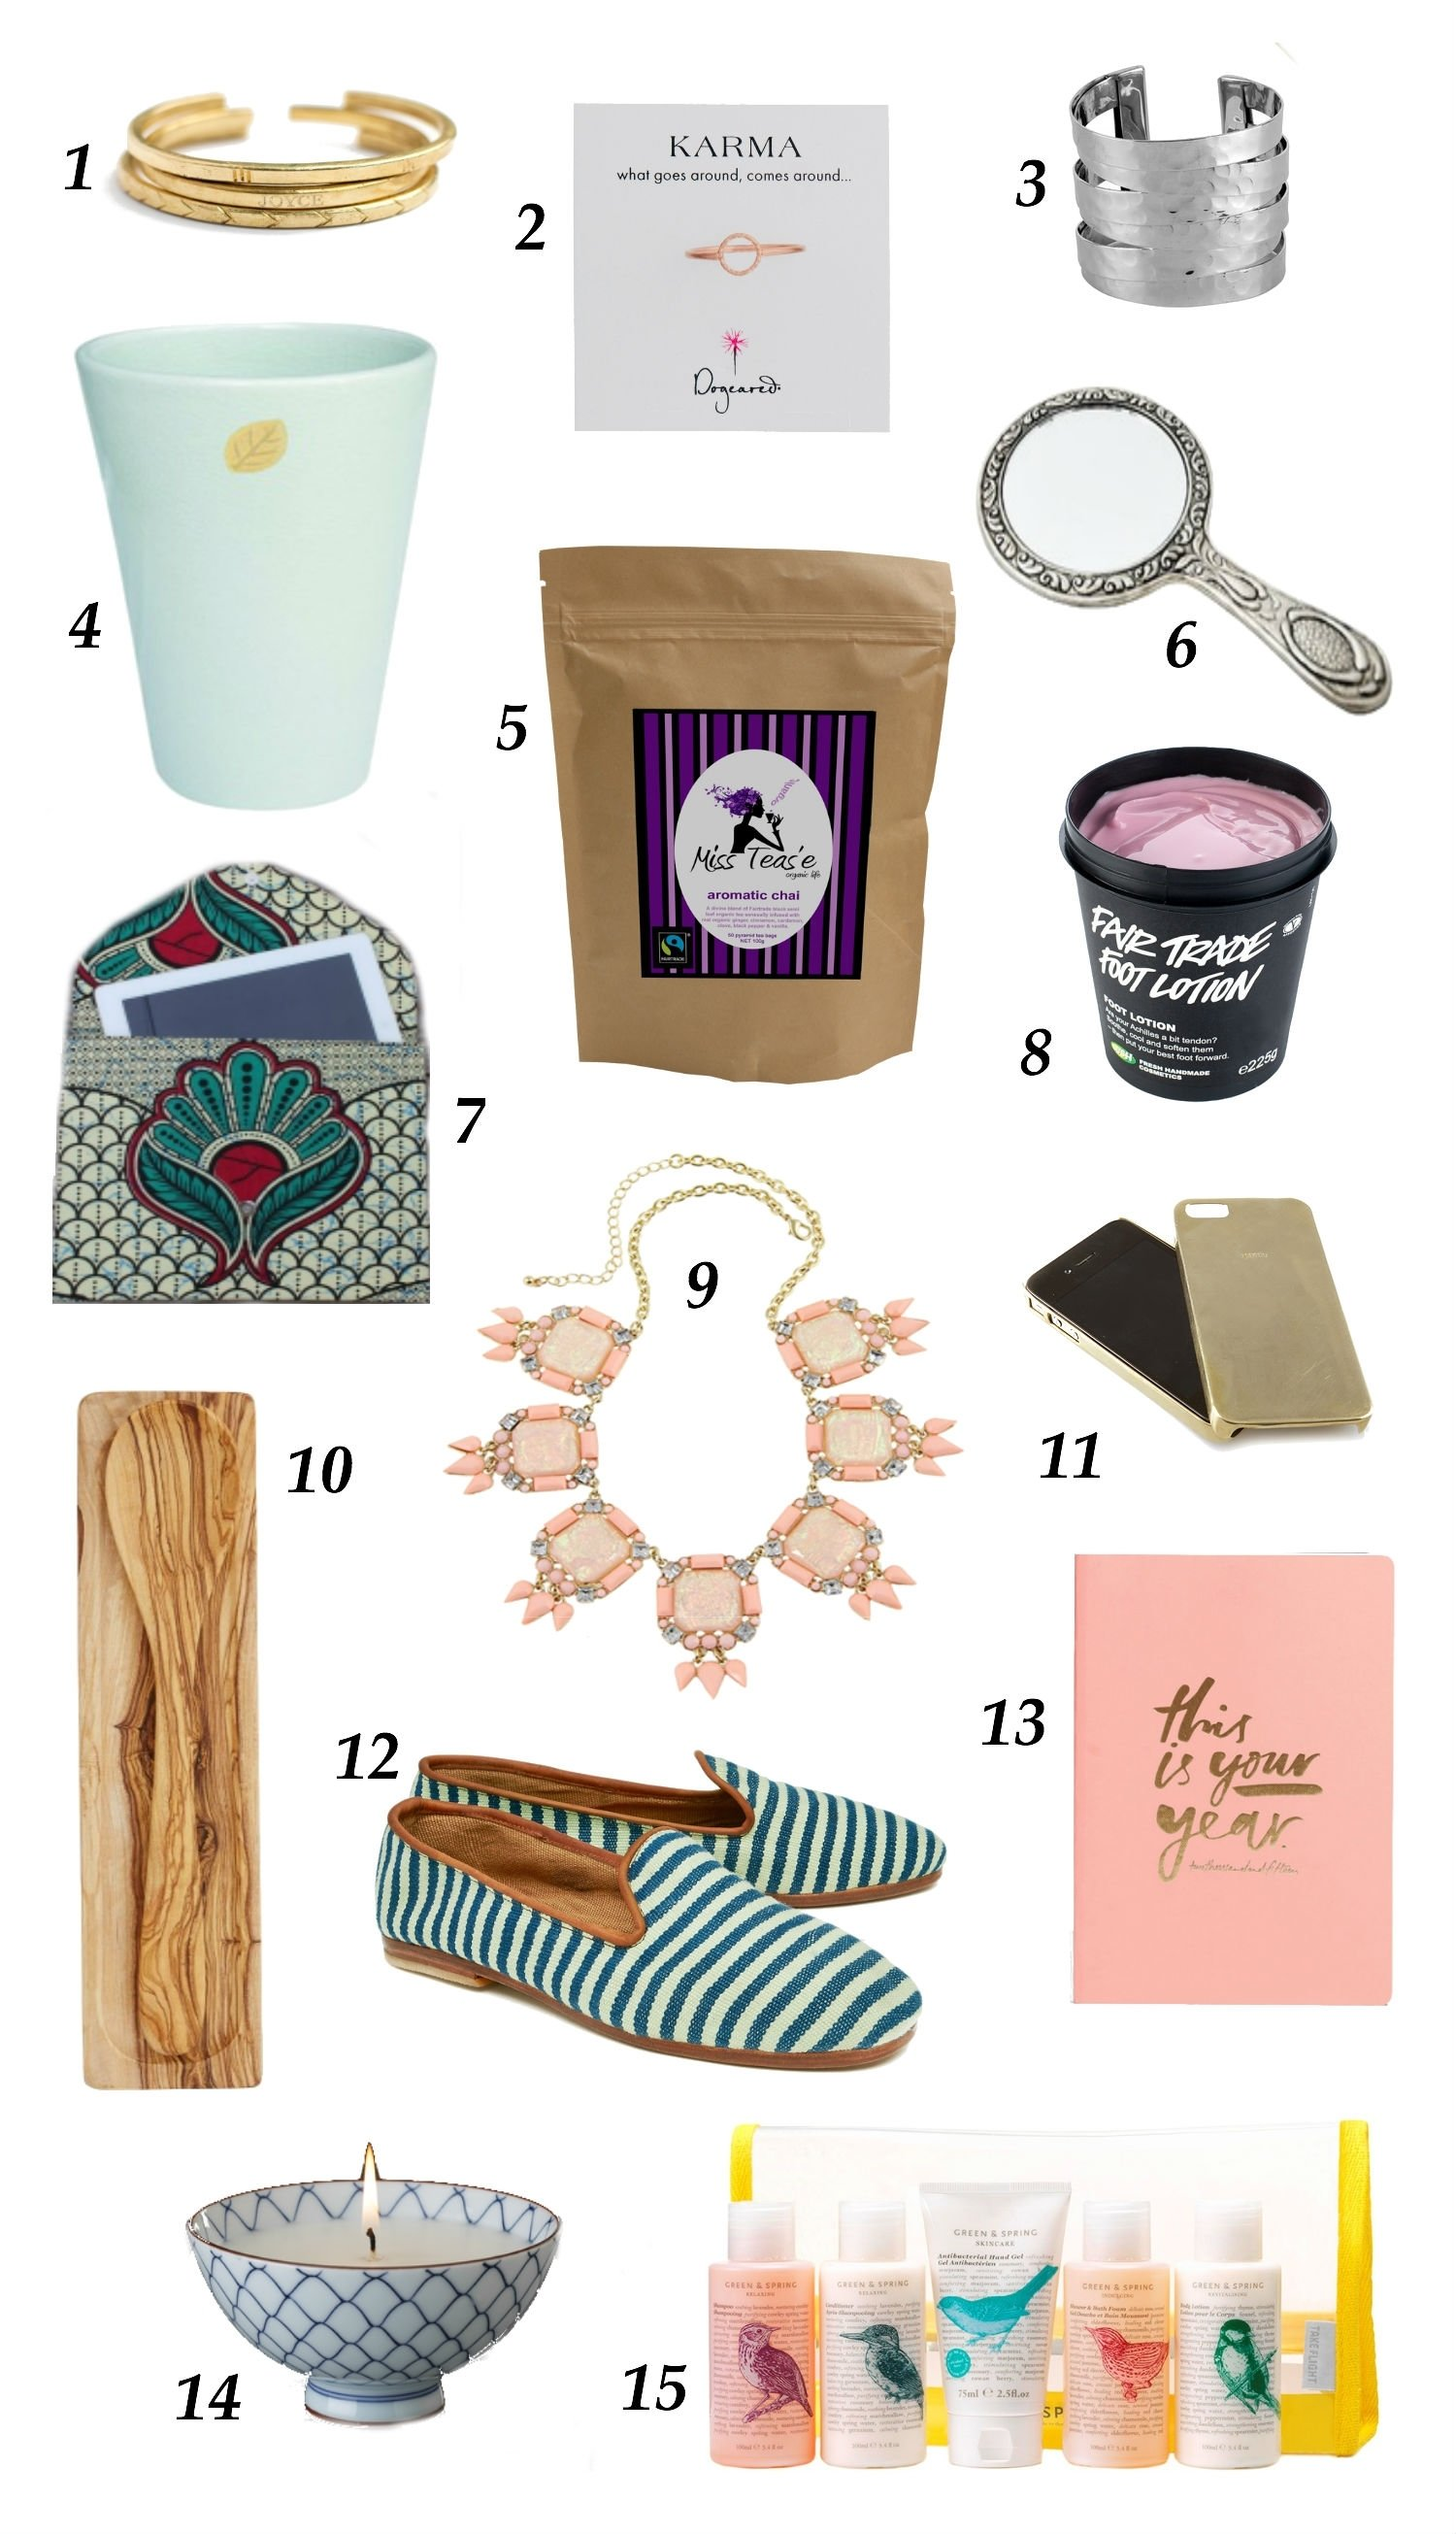 10 Fabulous Christmas Present Ideas For Her ethical christmas gift ideas for women one fair day 3 2020